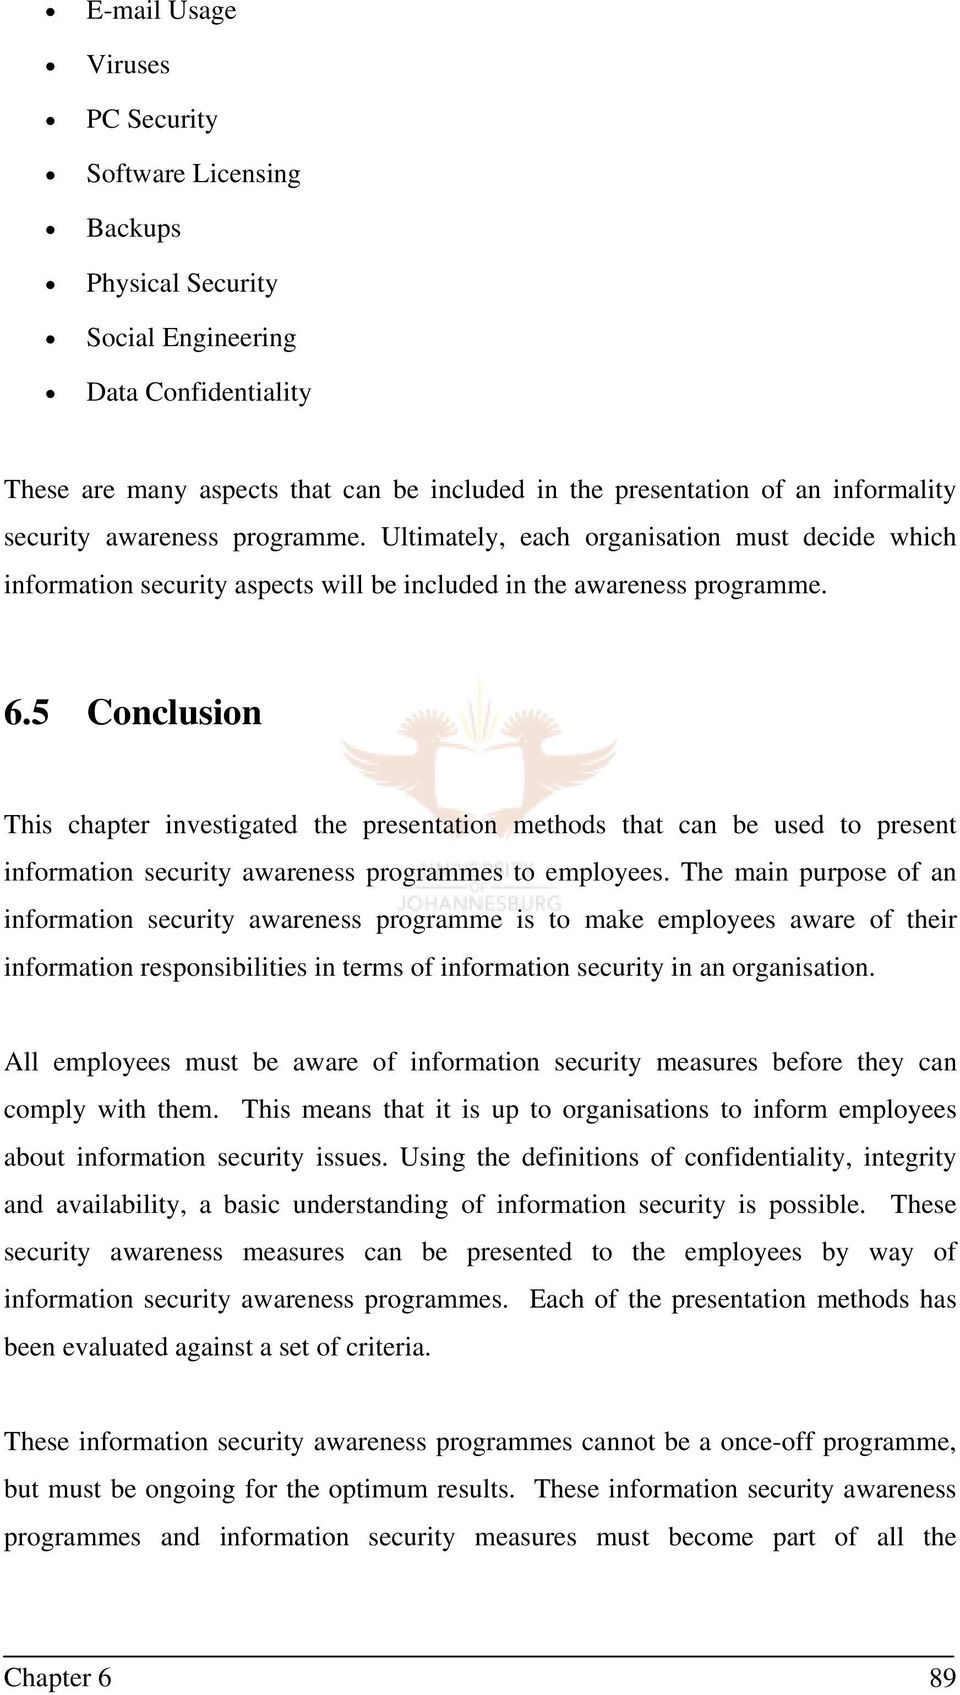 5 Conclusion This chapter investigated the presentation methods that can be used to present information security awareness programmes to employees.